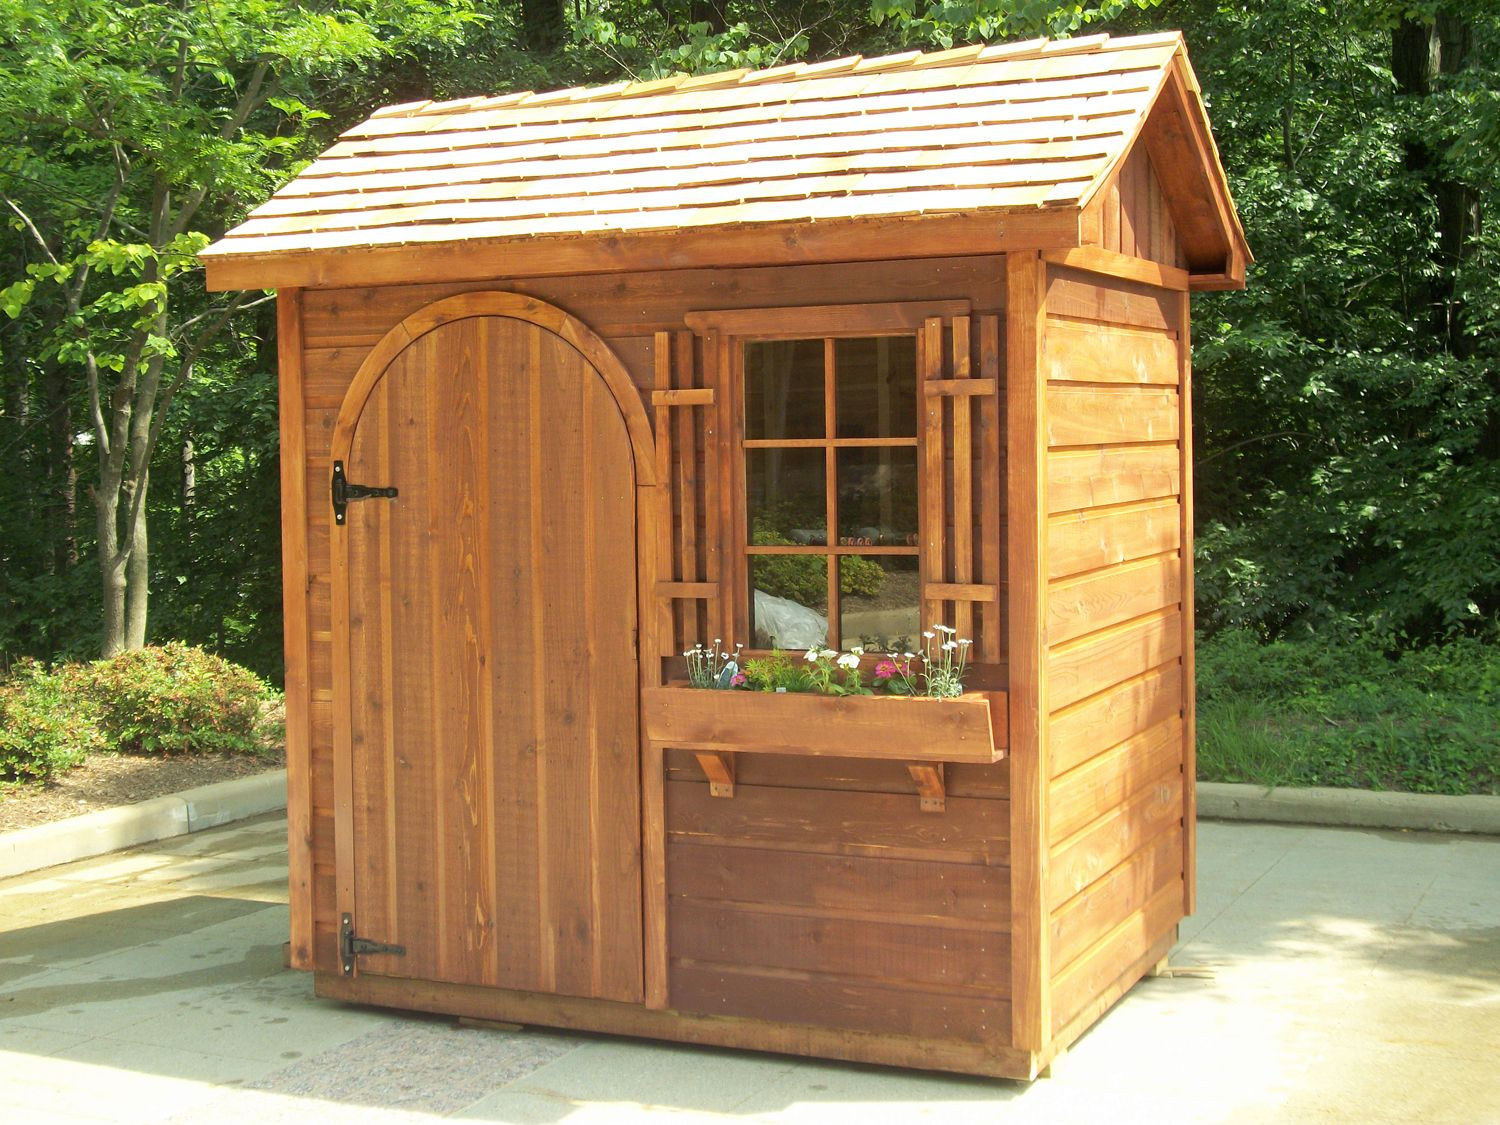 How to build a small storage shed ehow, Storage sheds